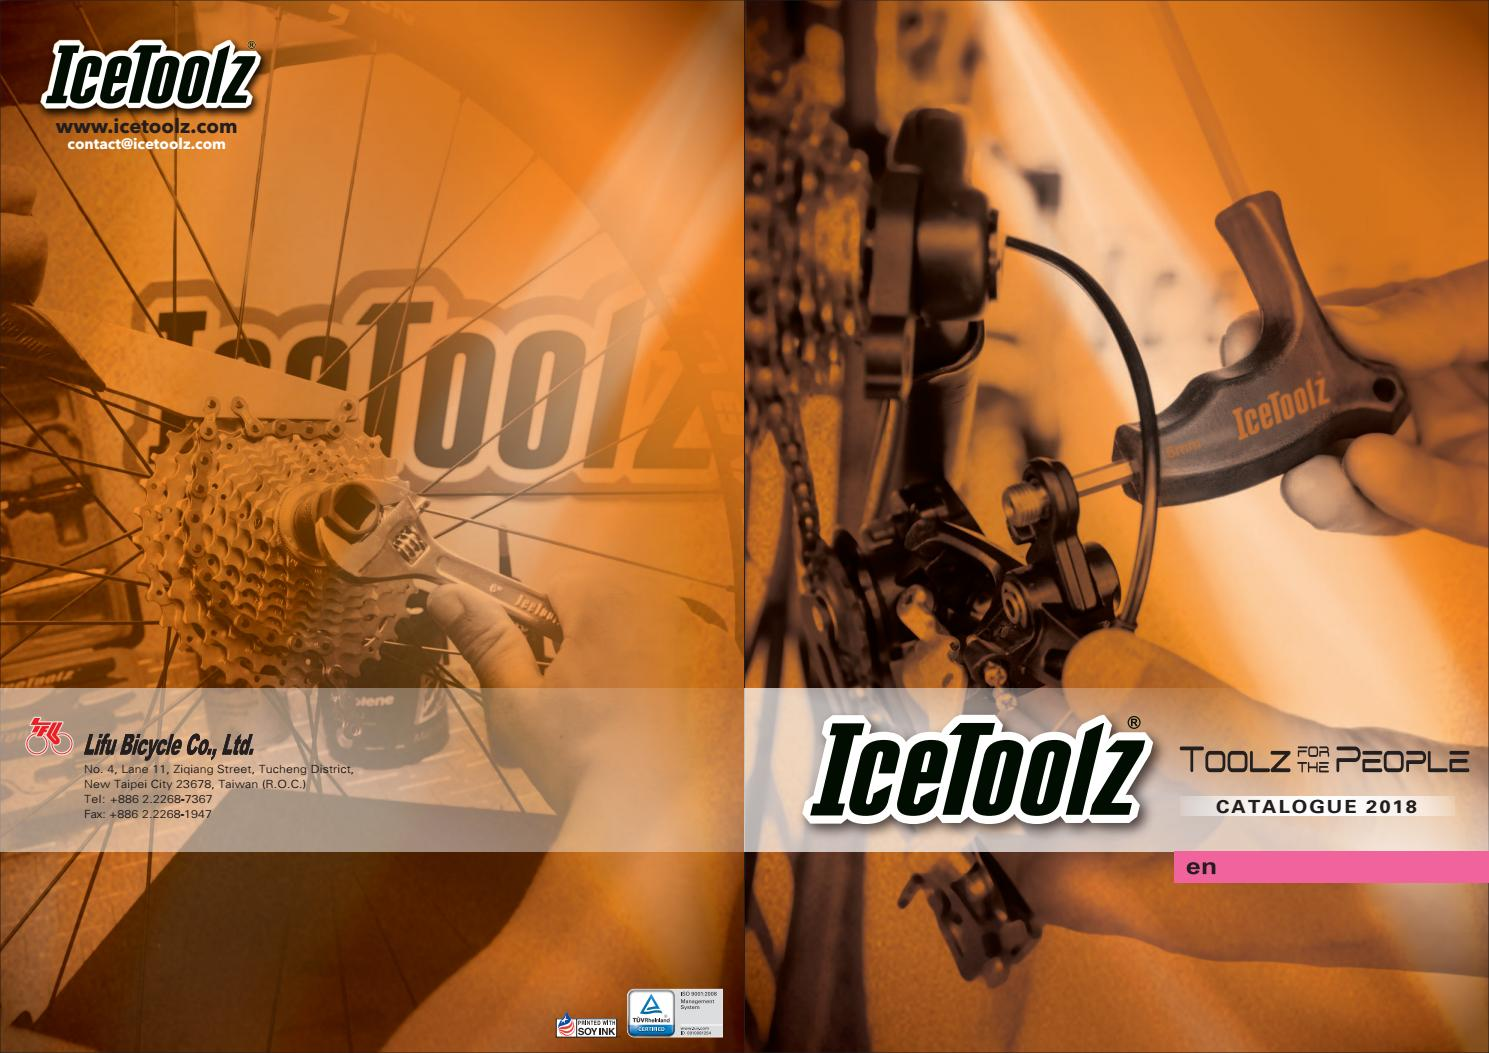 ICETOOLZ 27P3 TOOL CHAINRING BOLT SCREWDRIVER STYLE ICE TOOLZ